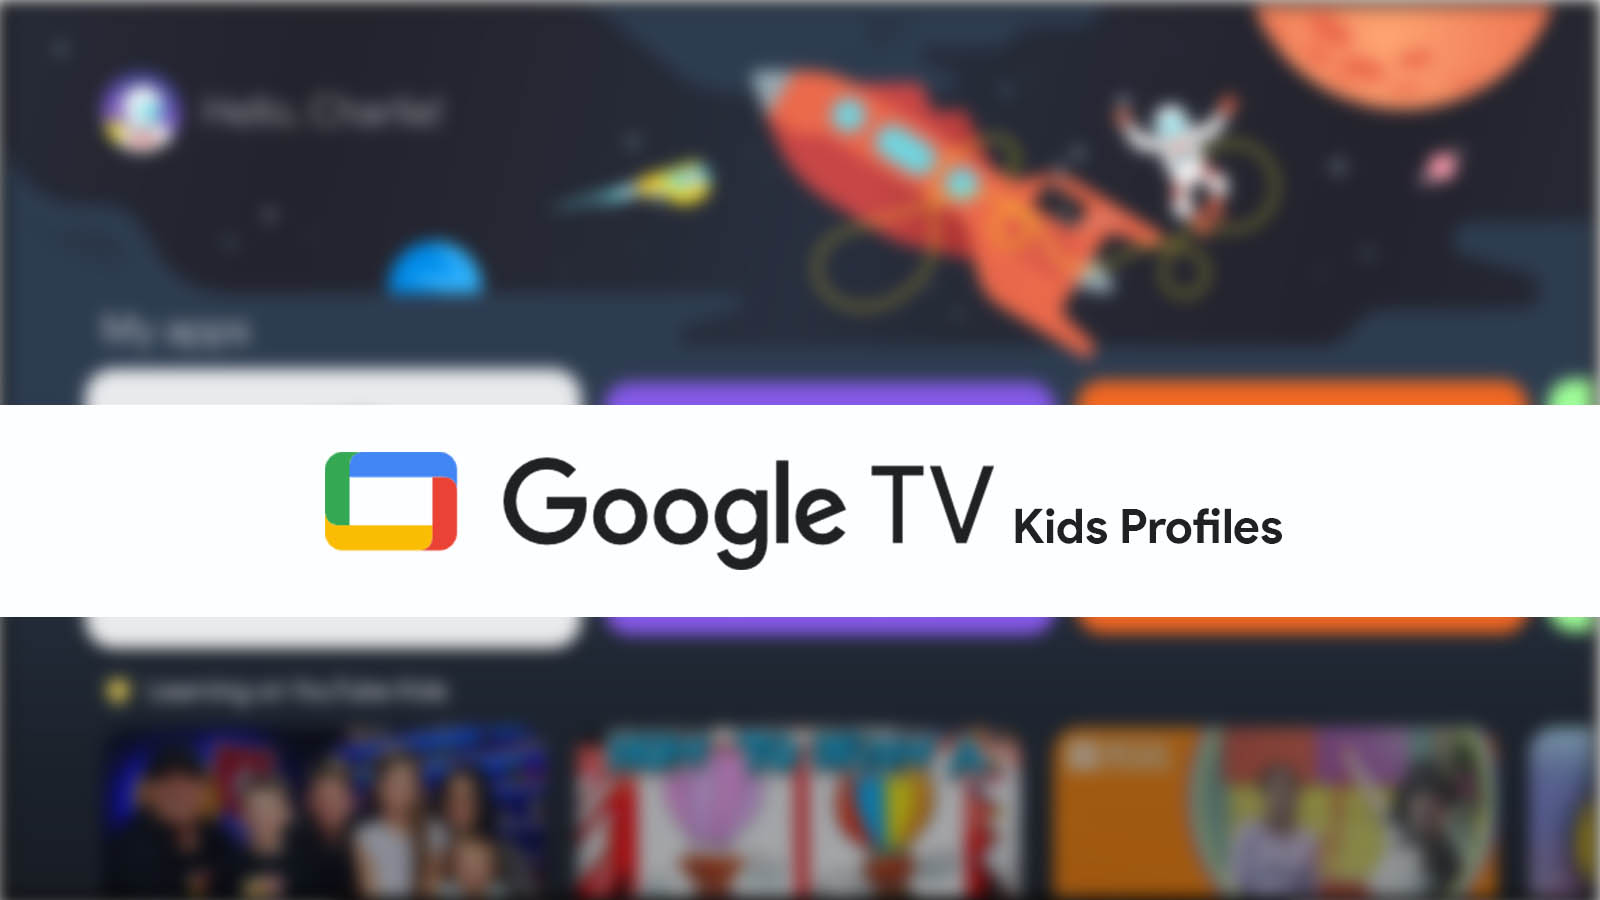 5 ways that the Chromecast with Google TV can improve kids profiles